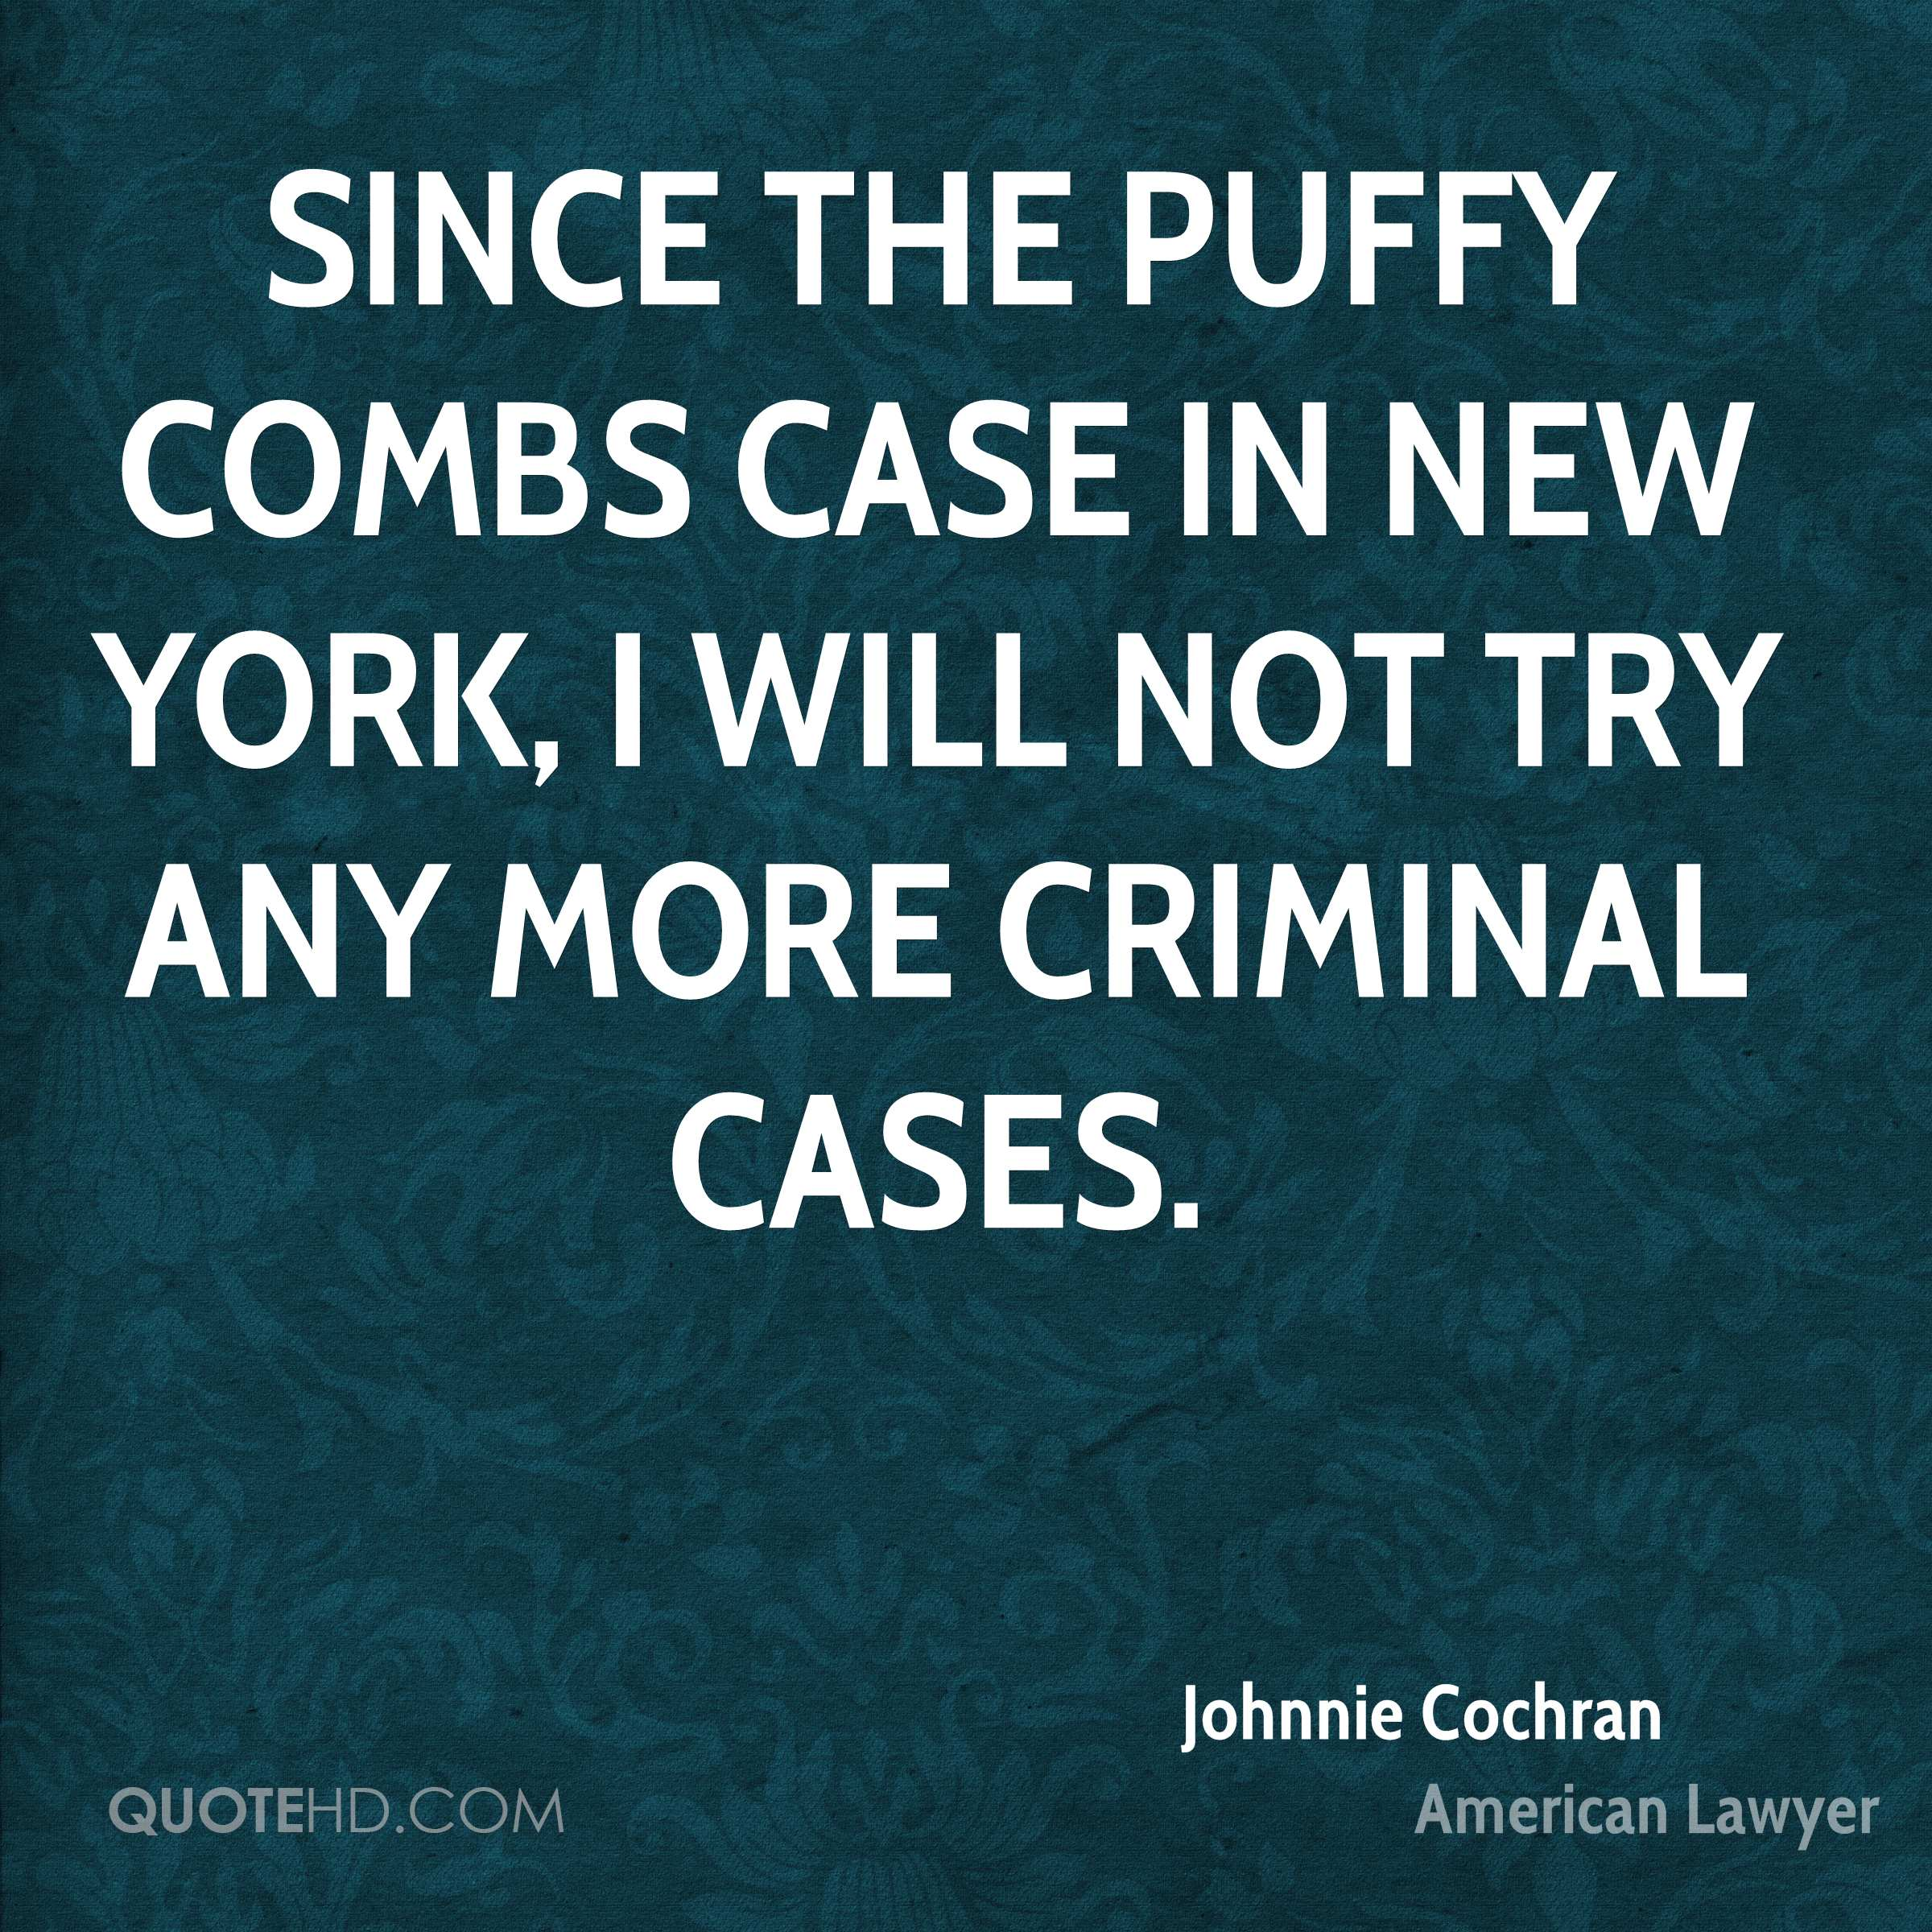 Since the Puffy Combs case in New York, I will not try any more criminal cases.